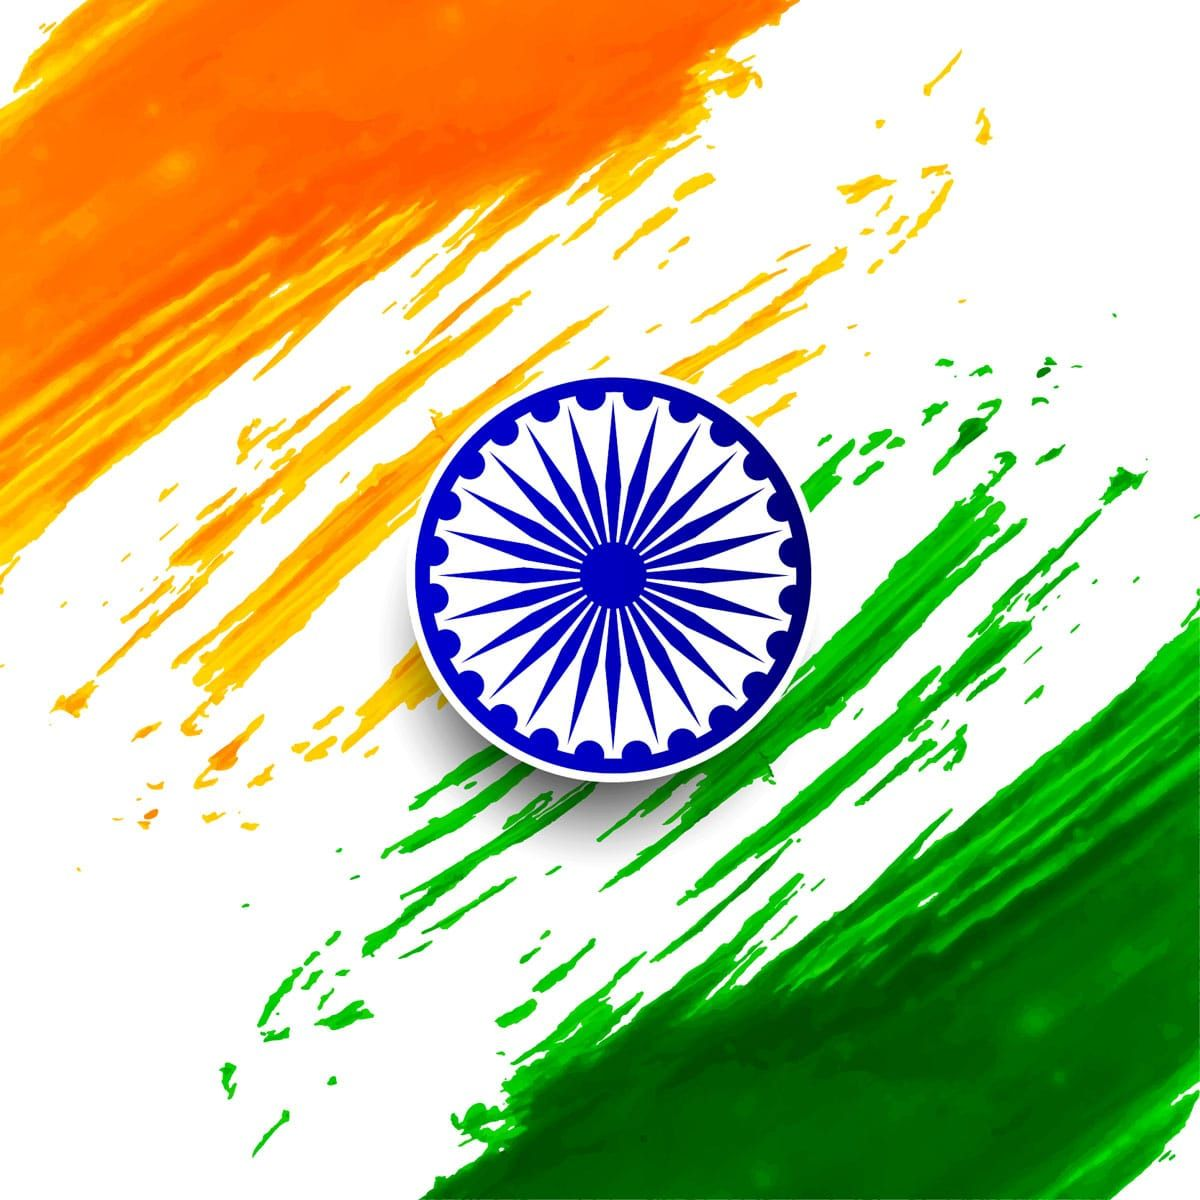 indian flag hd images | indian flag in 2018 | pinterest | indian